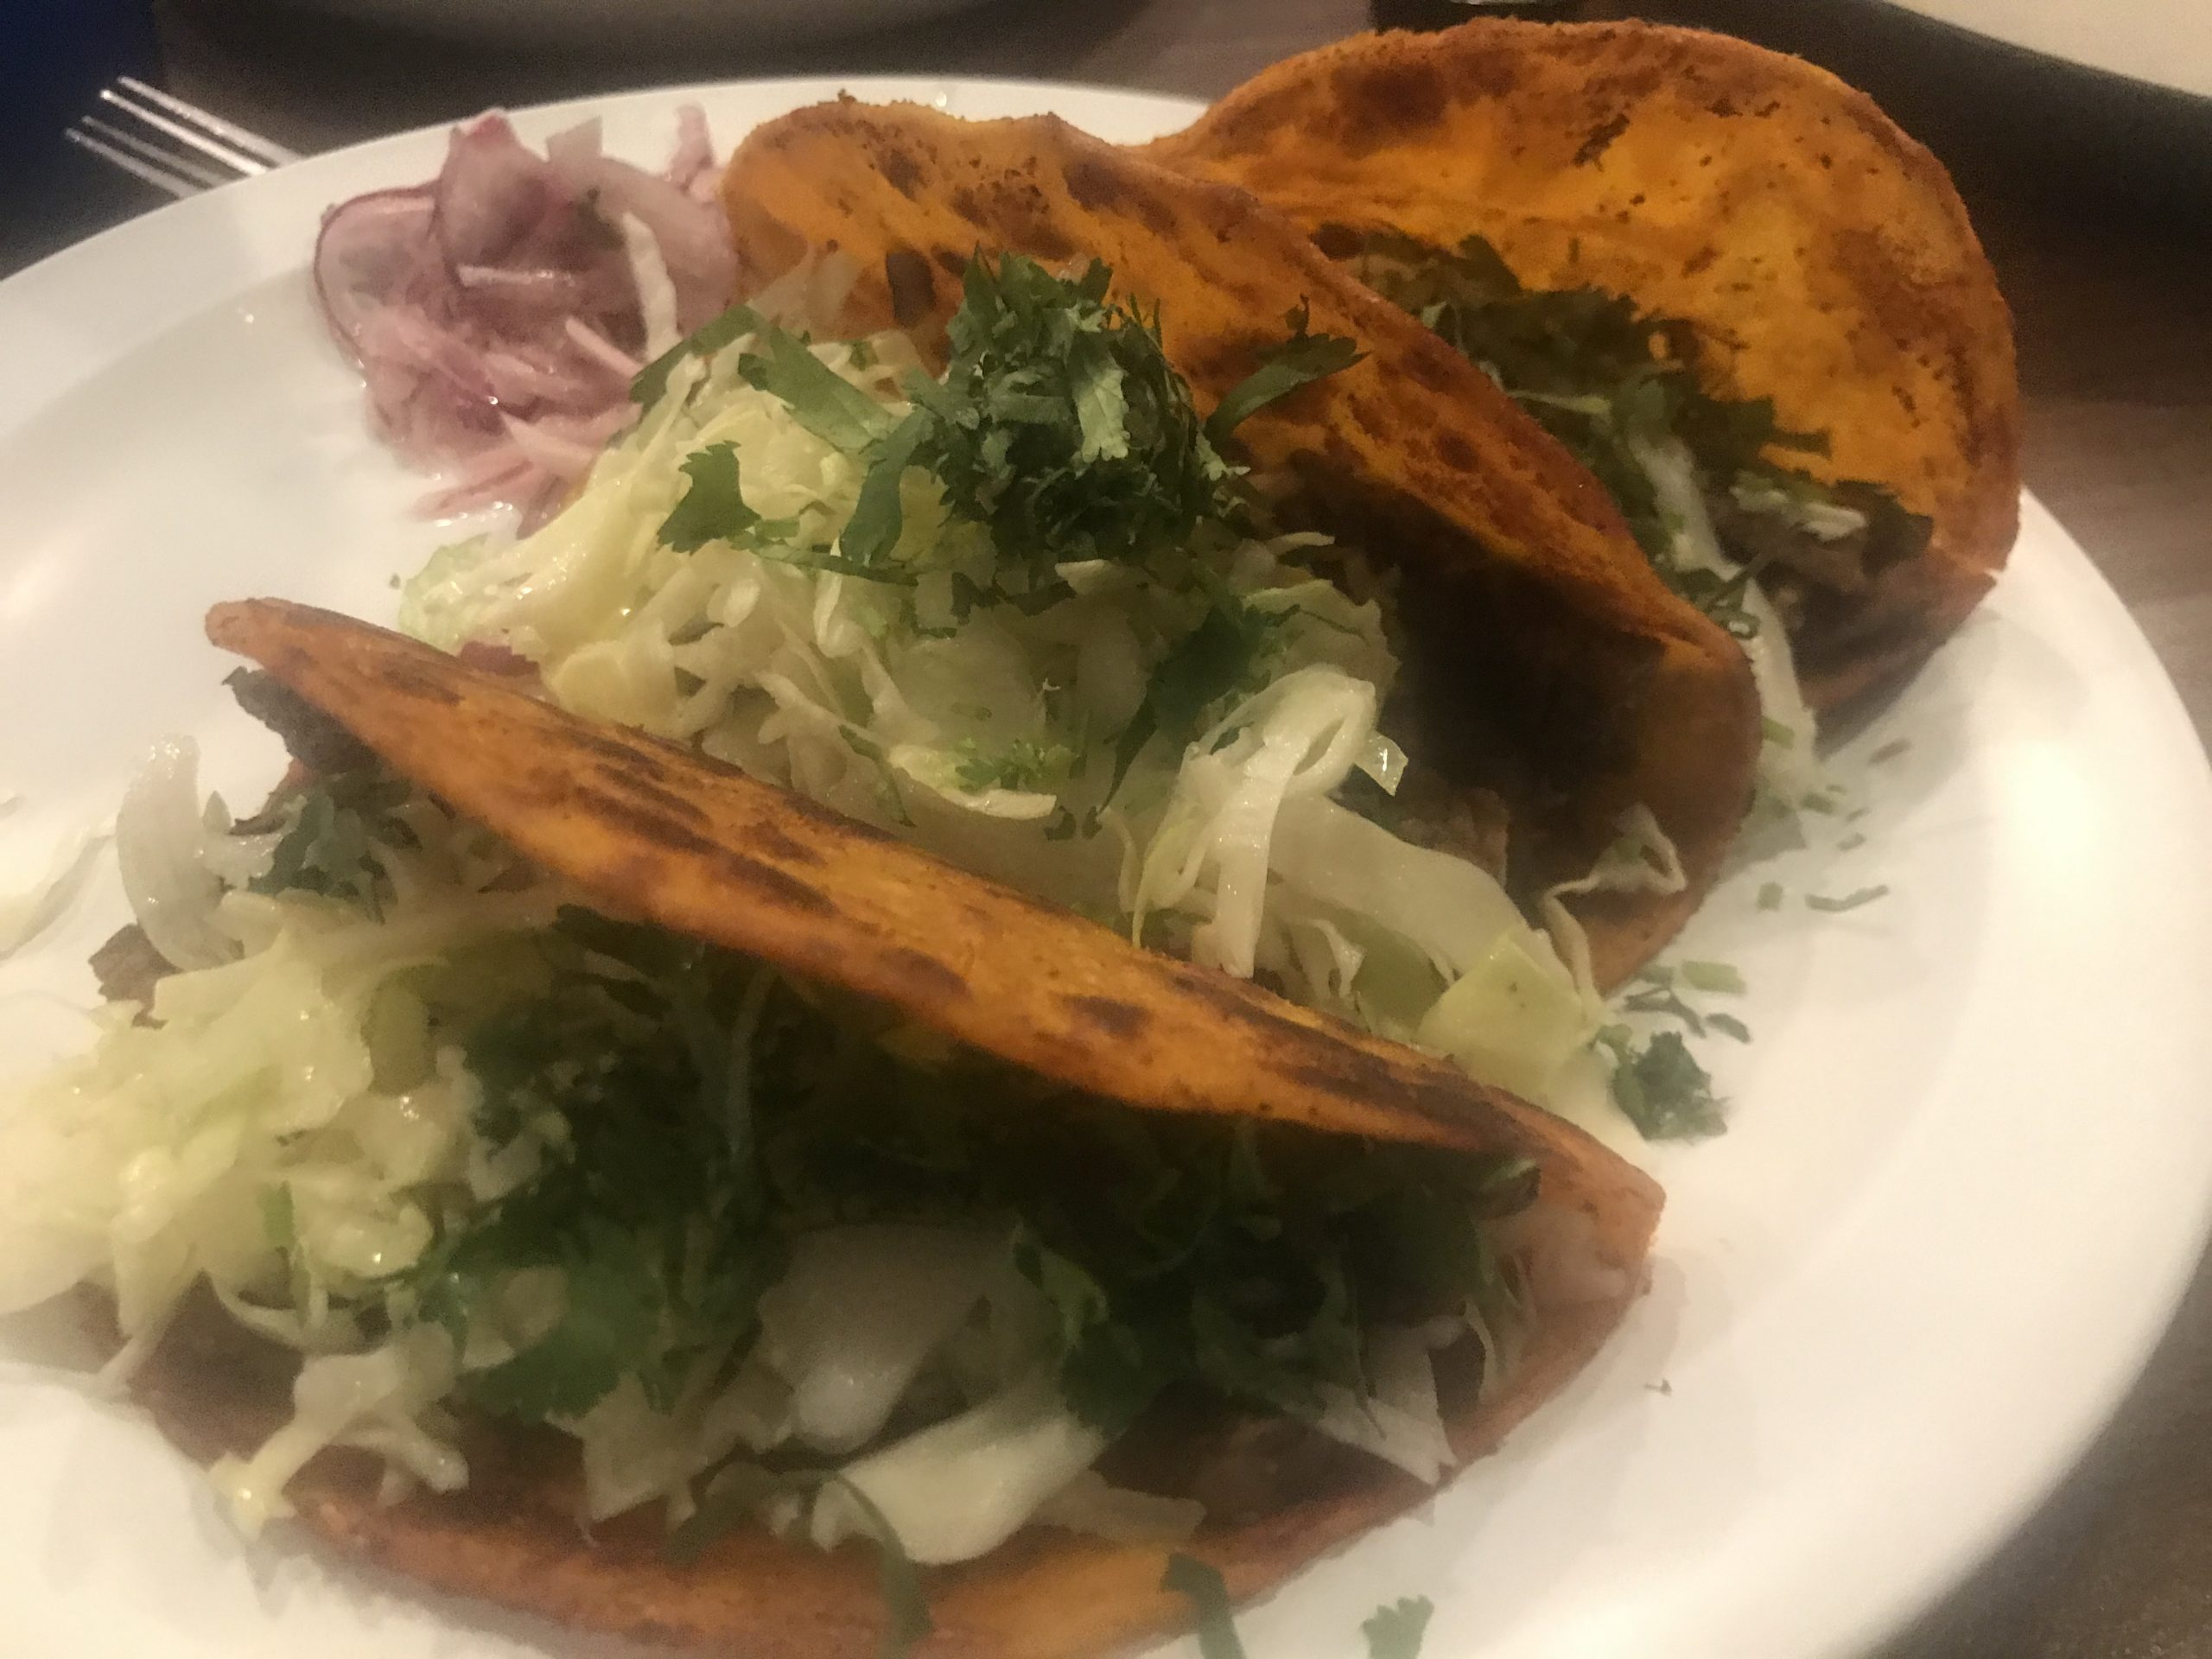 Tacos at Tomatillo Authentic Mexcian Flavors – April 7 2019